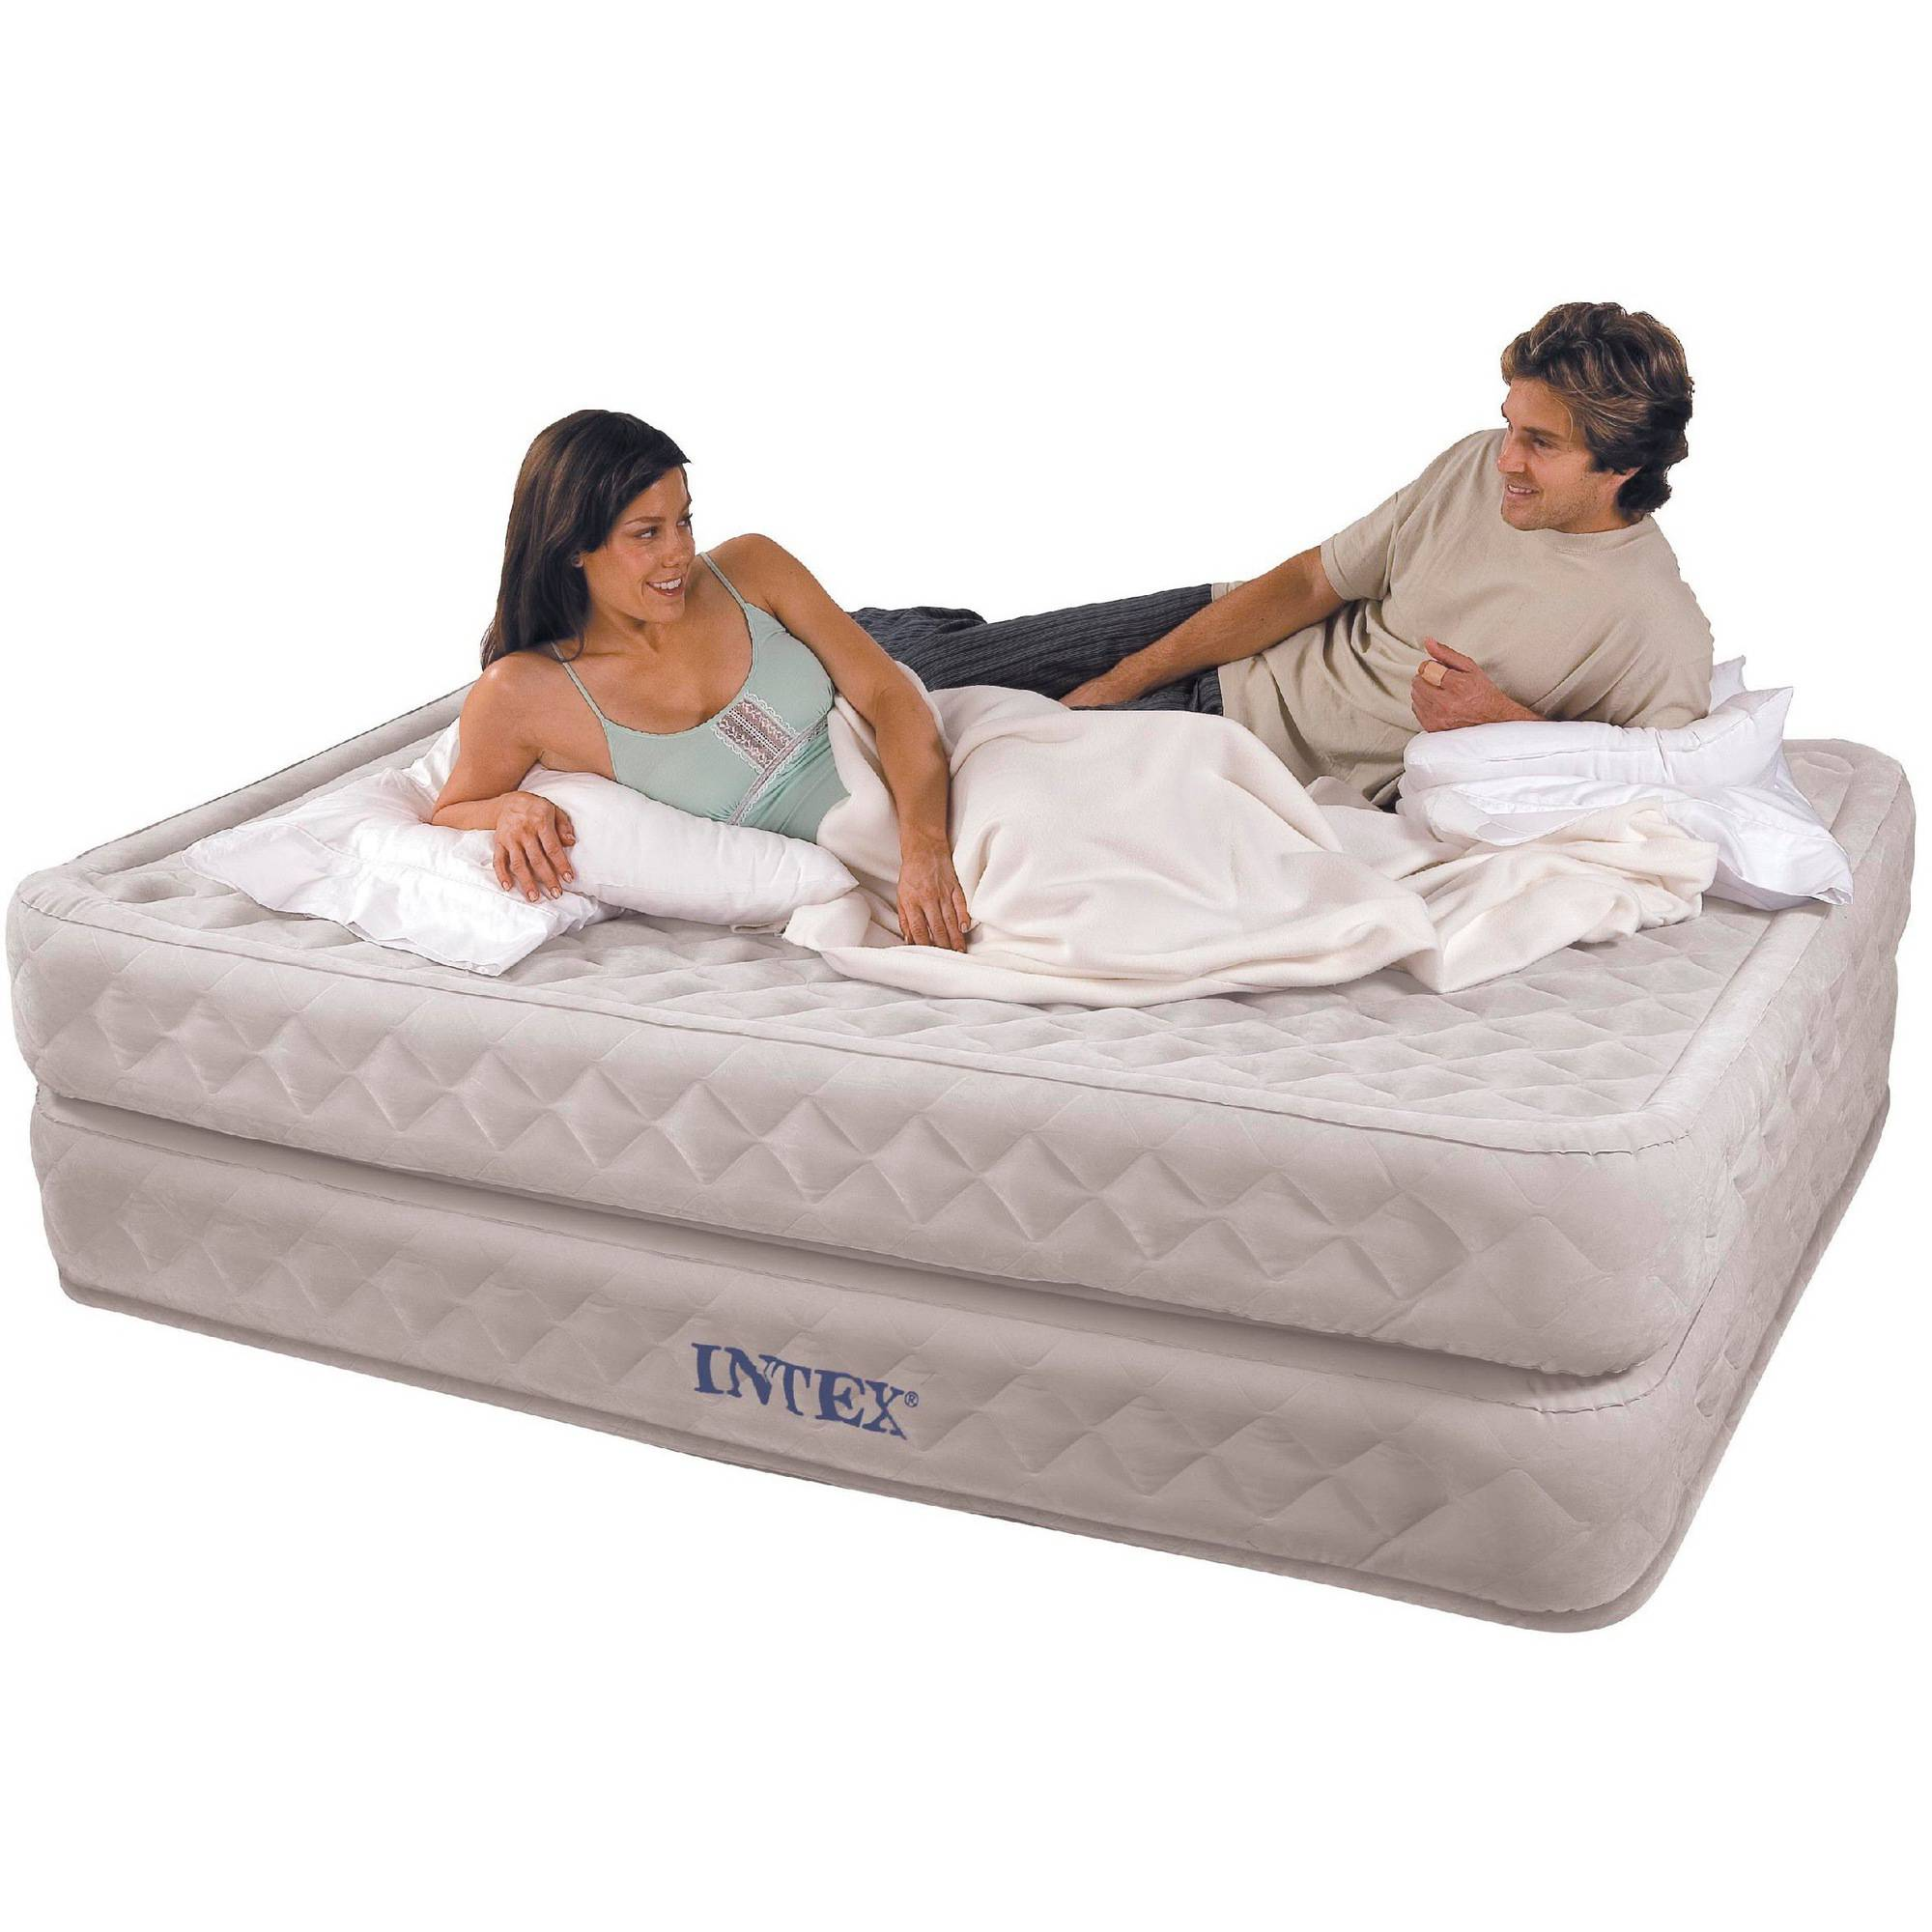 "Intex Queen 20"" Supreme Air Flow Airbed Mattress with Built-in Pump"